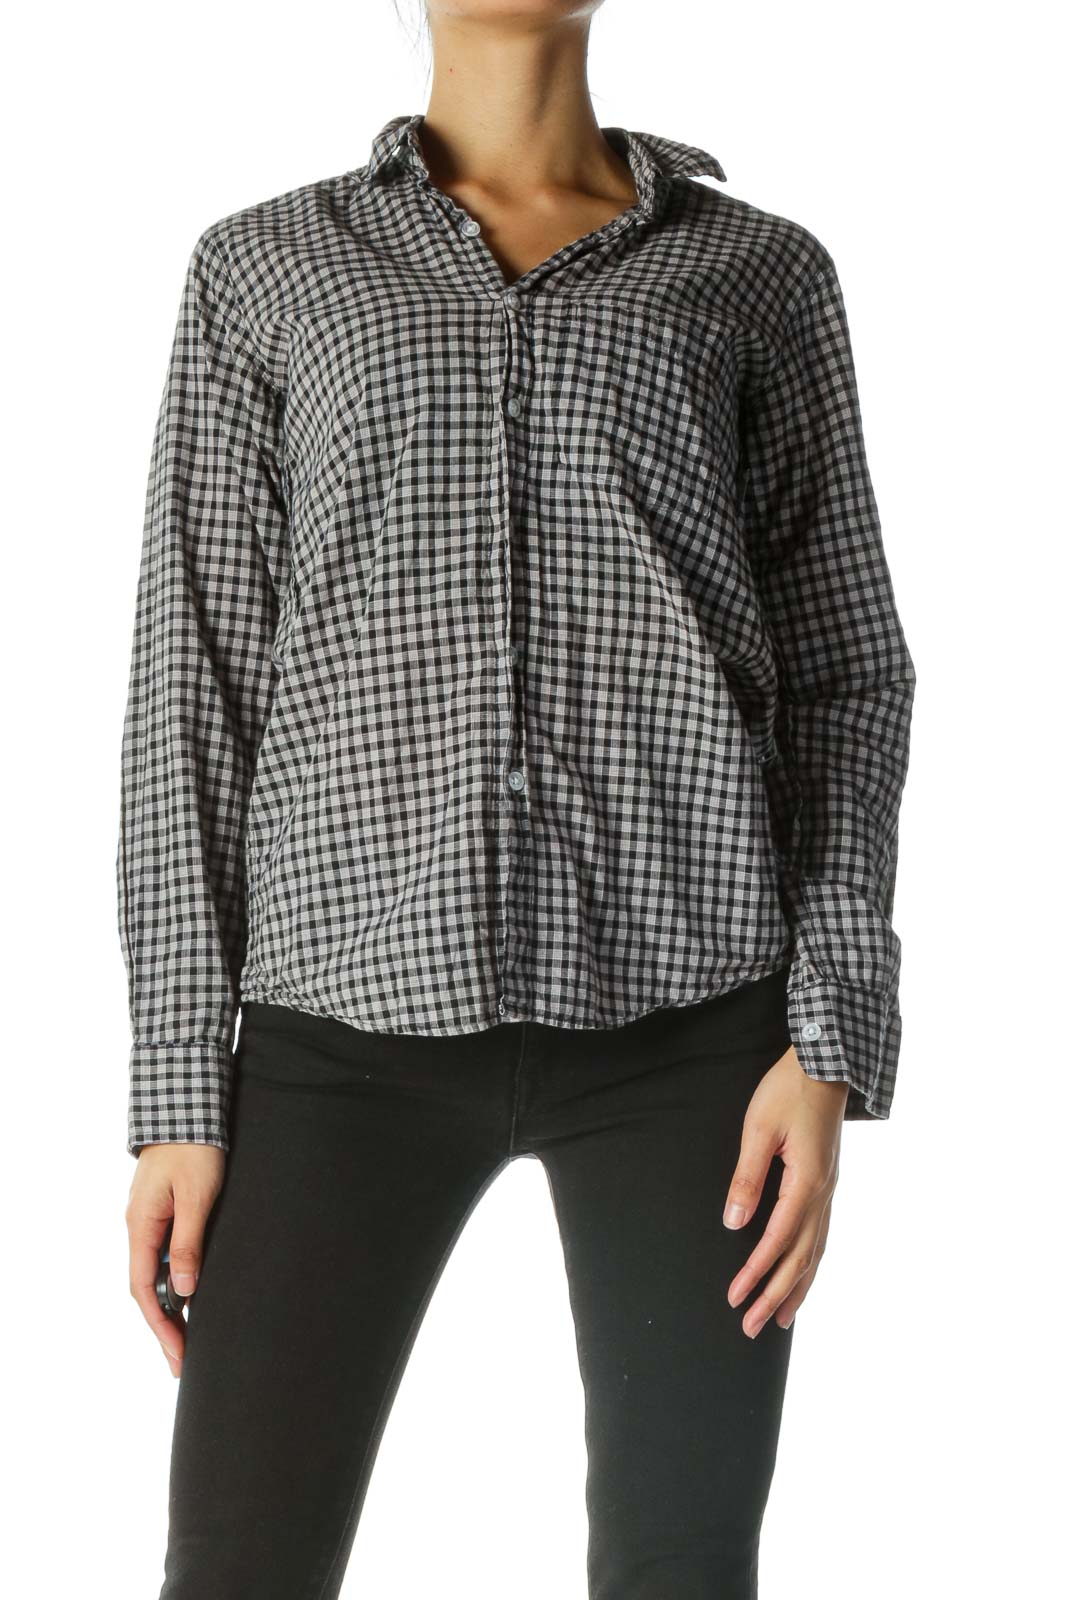 Black Gray 100% Cotton Shirt